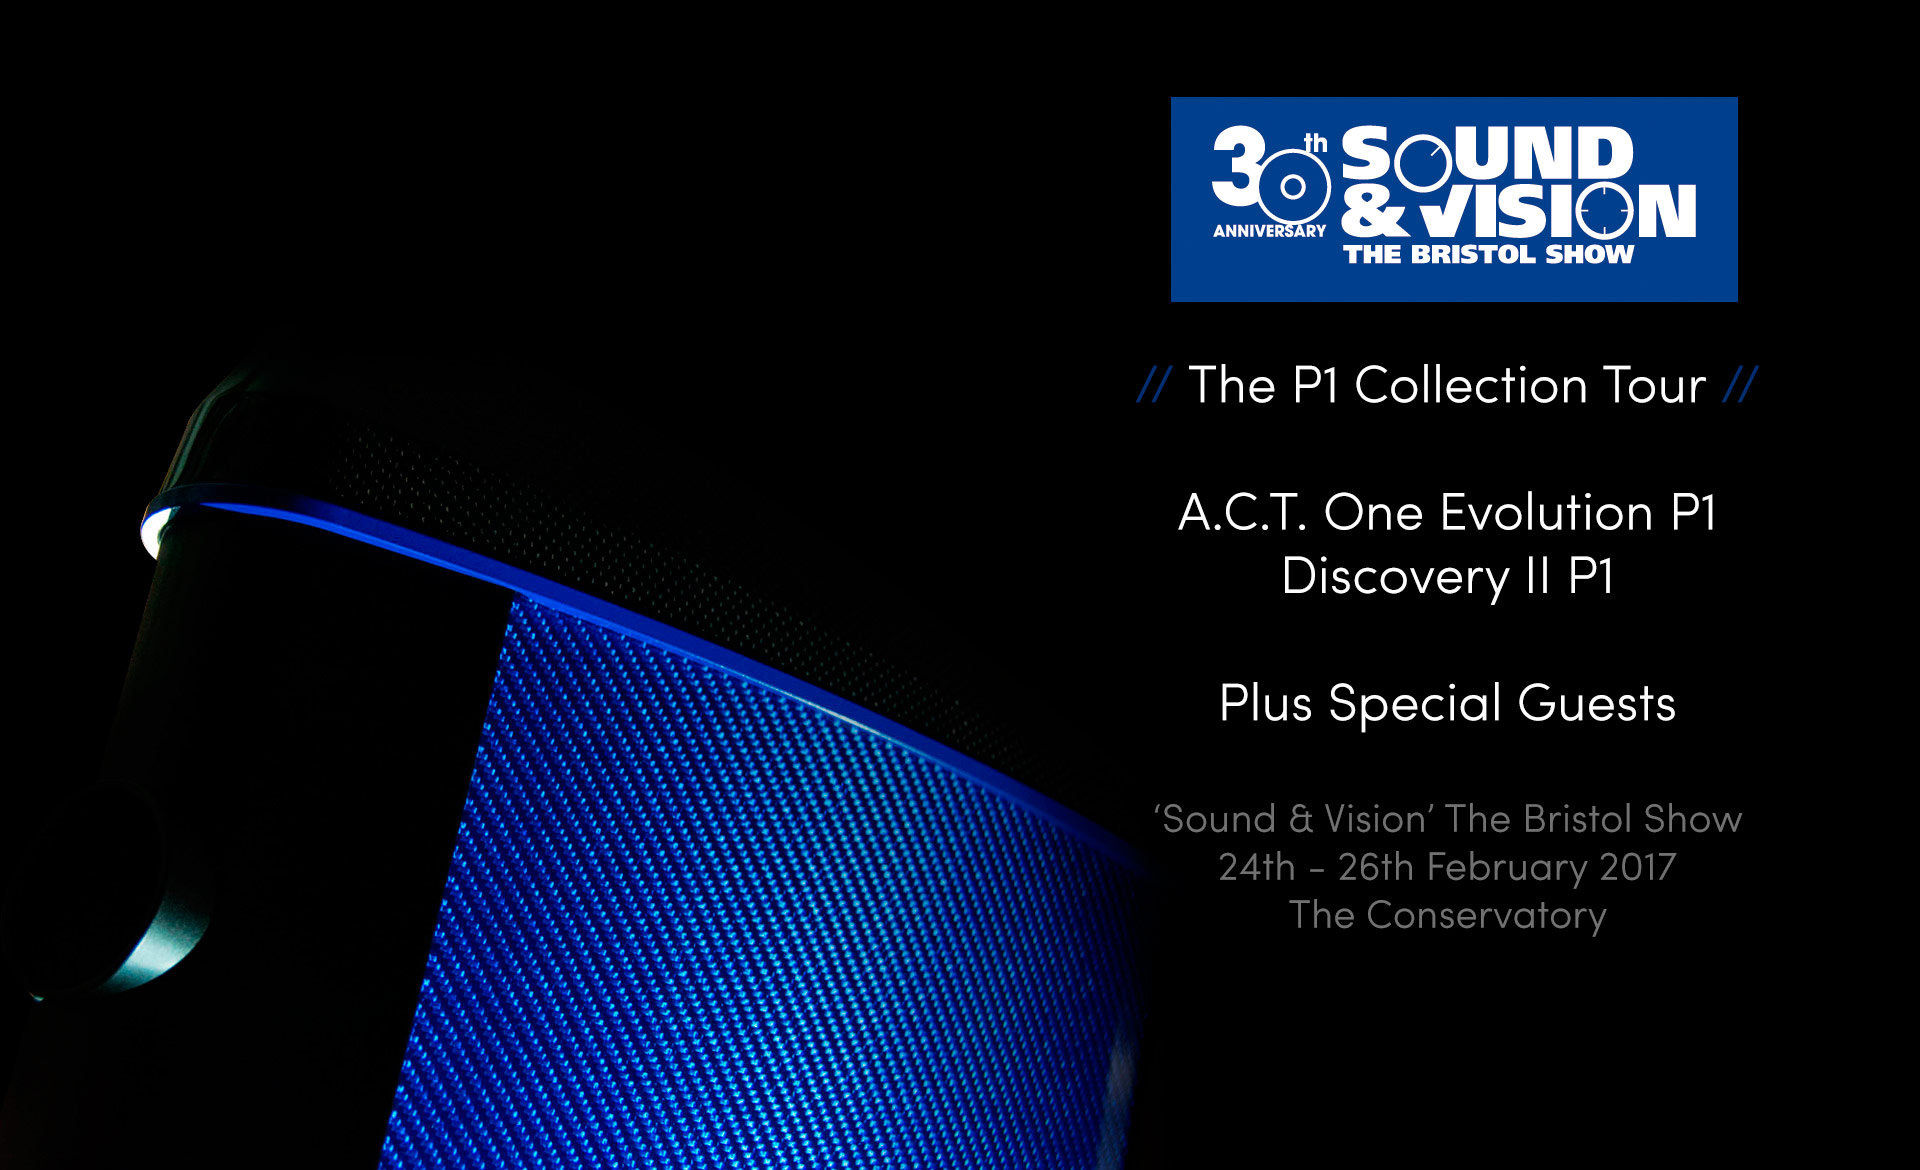 Geometry Series P1 Collection Tour Poster showing A.C.T. One Evolution P1 Loudspeaker finished in Ettore Blue Hypetex Coloured Carbon Fibre